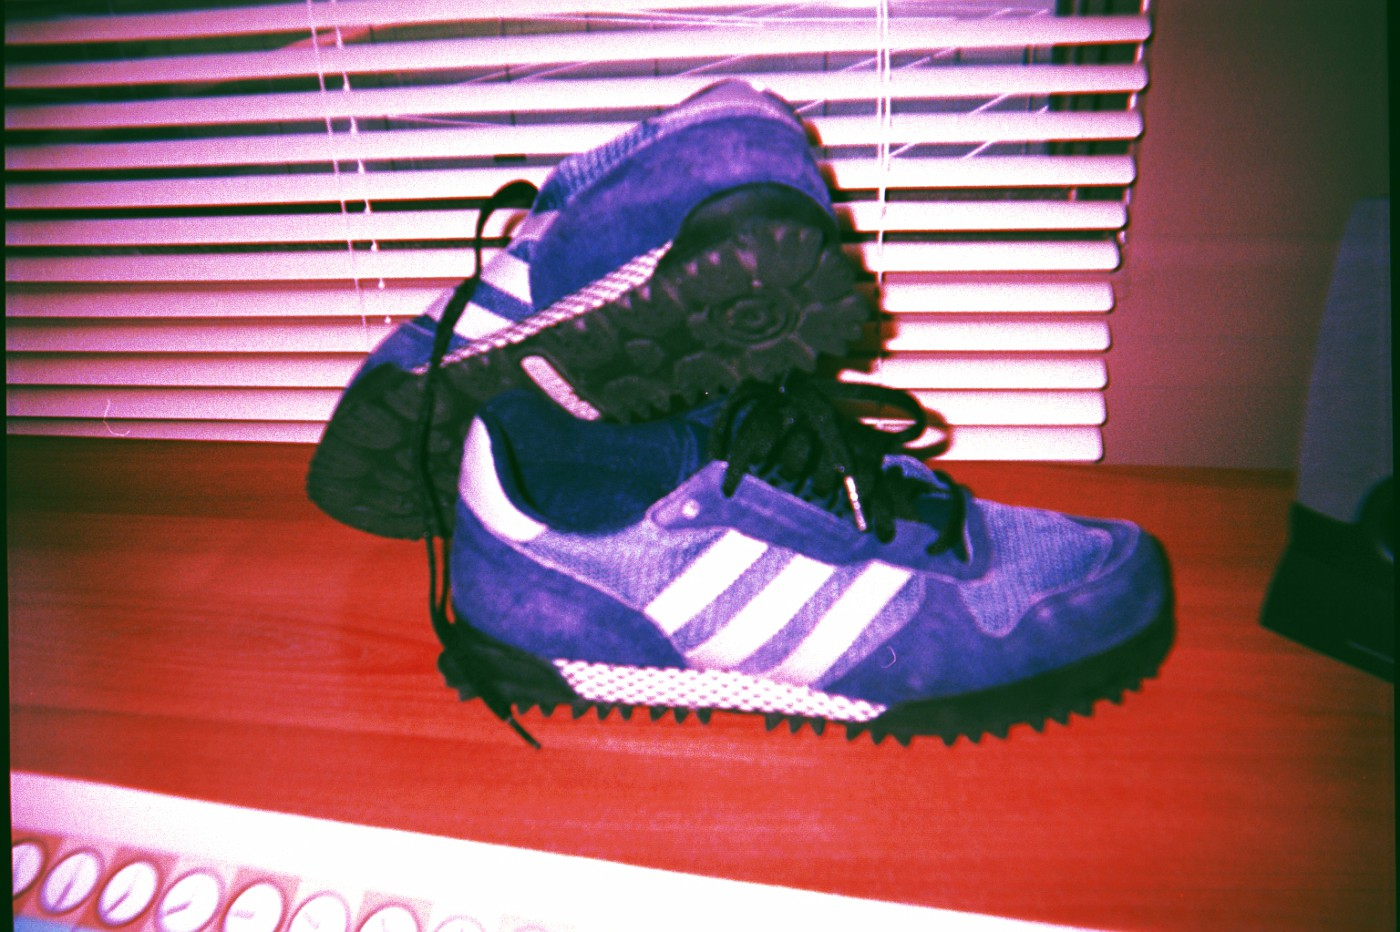 Late 90's adidas re-issue model is lost (;